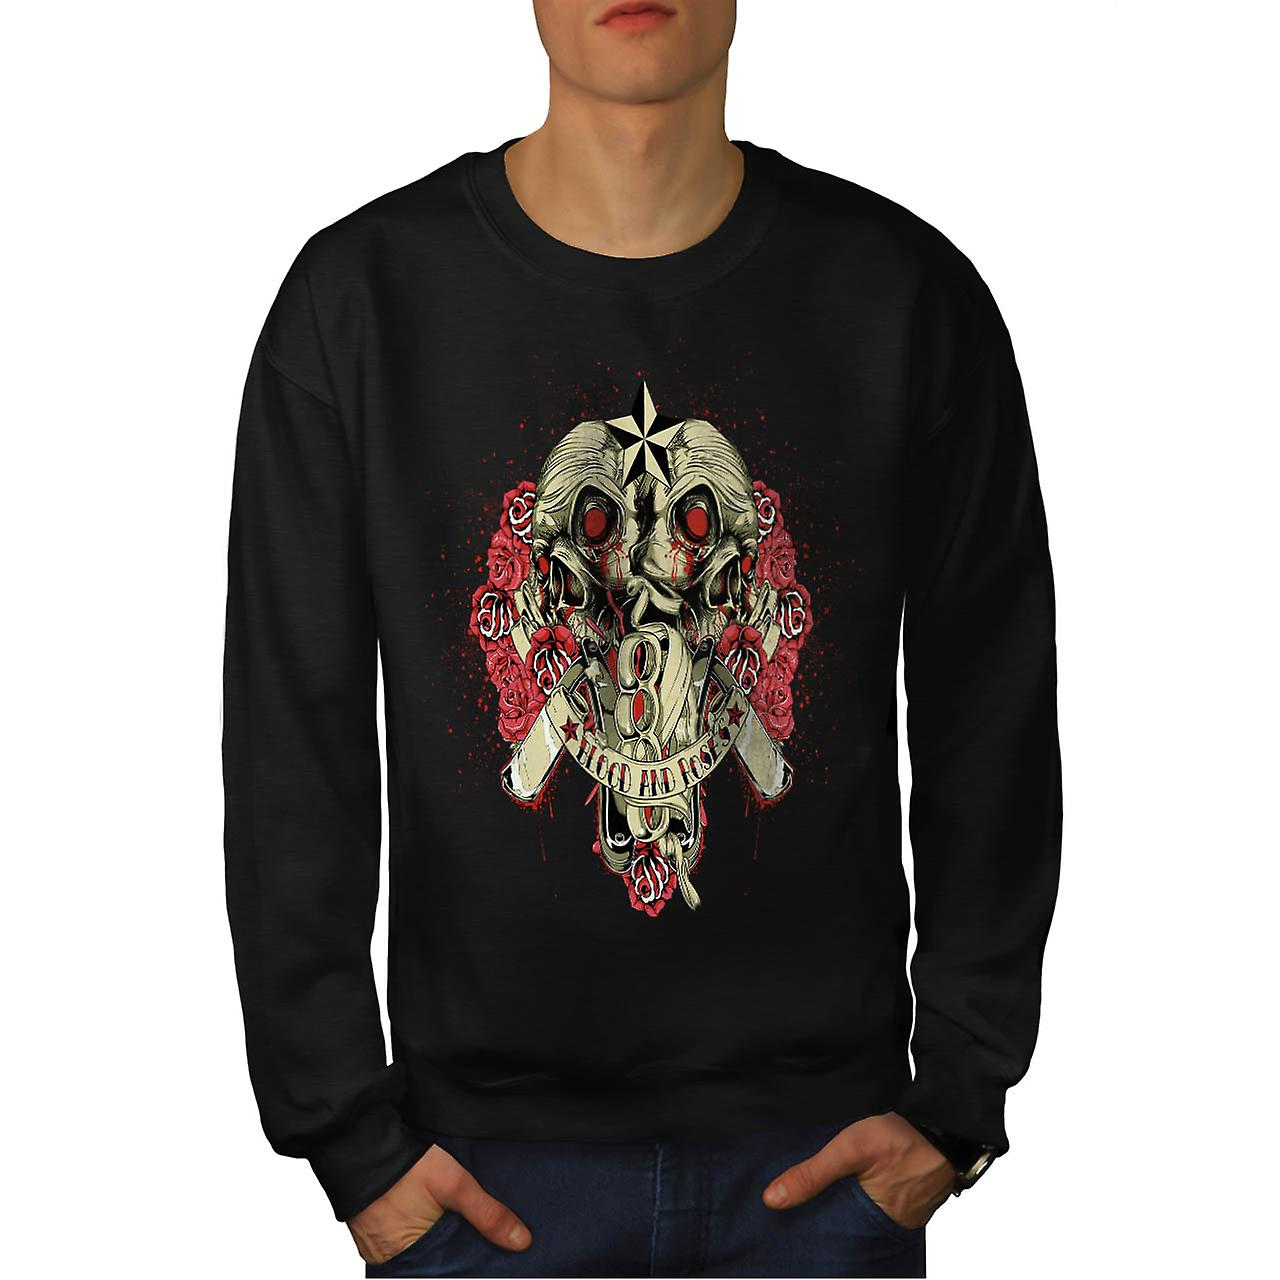 Blood And Roses Fear Flower Love Men Black Sweatshirt | Wellcoda